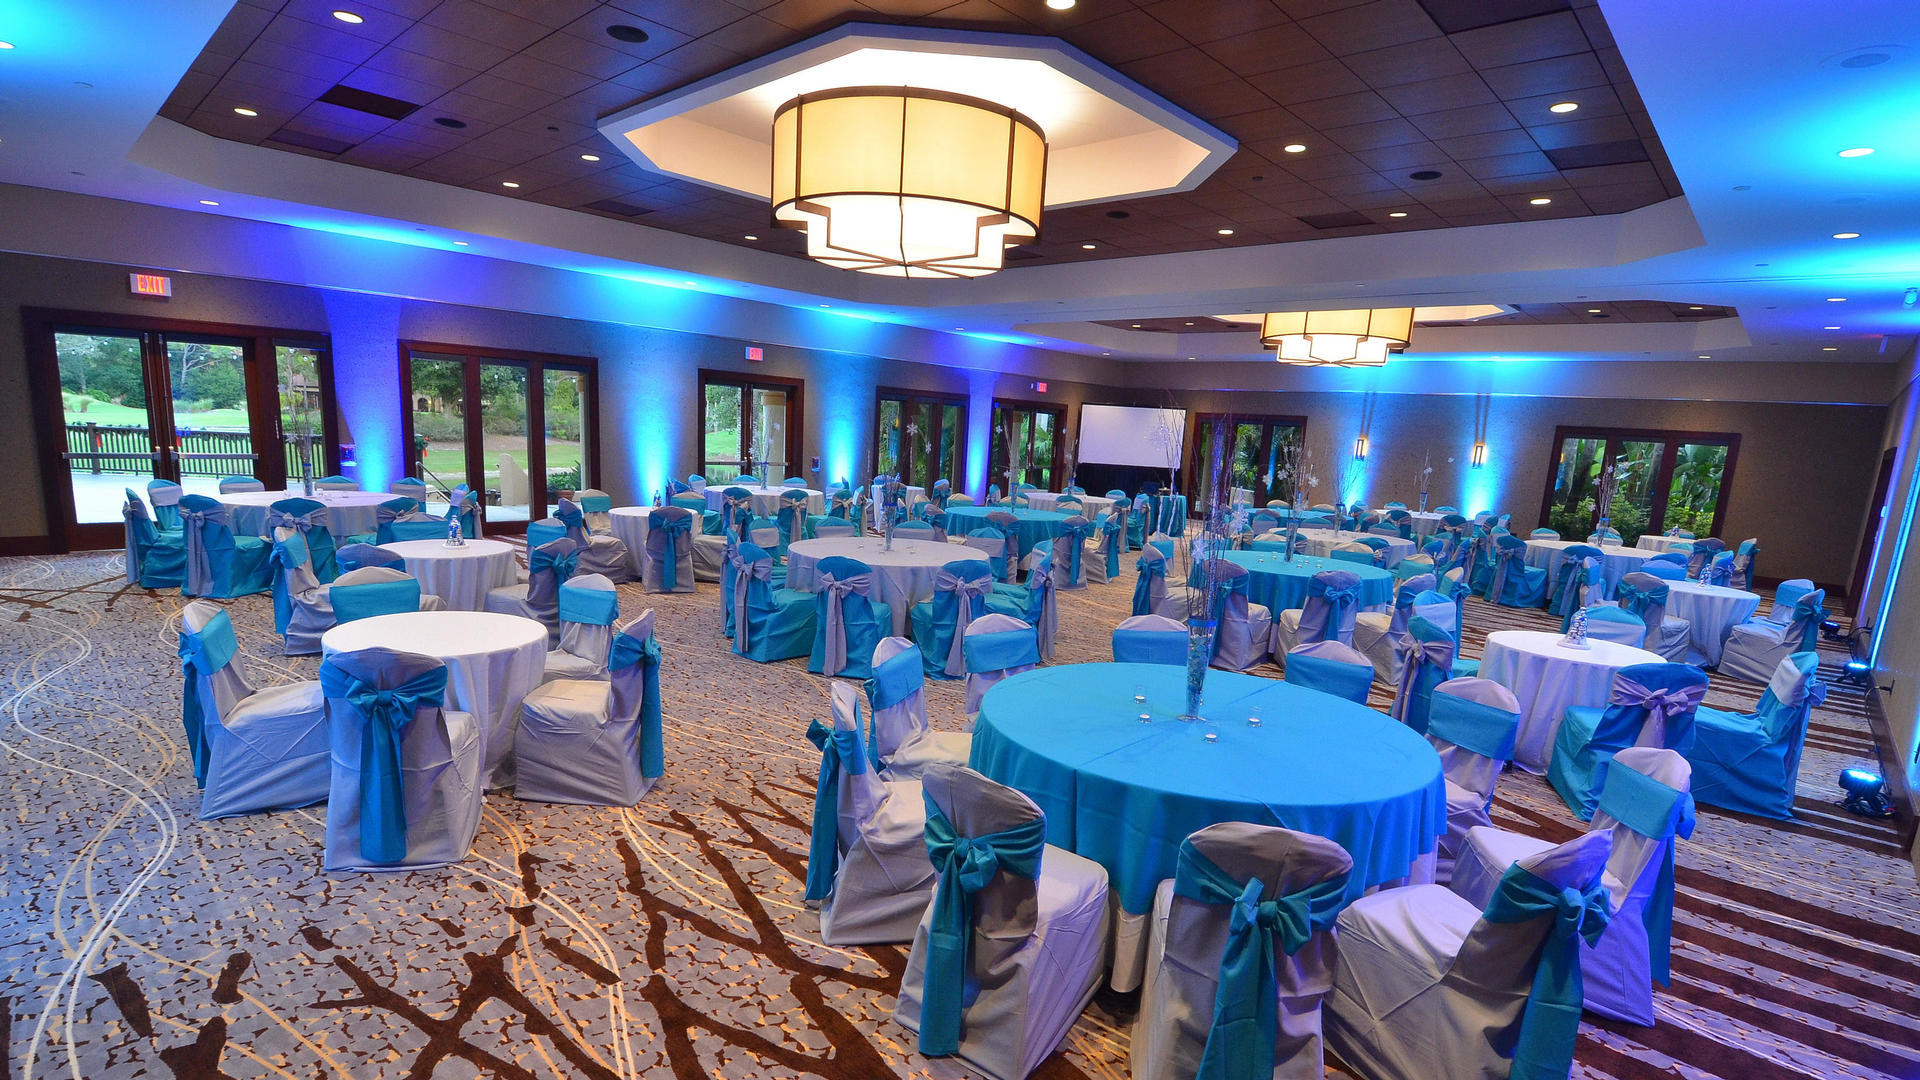 Ballroom Set Up For A Wedding at Villas Of Grand Cypress In Orlando, FL